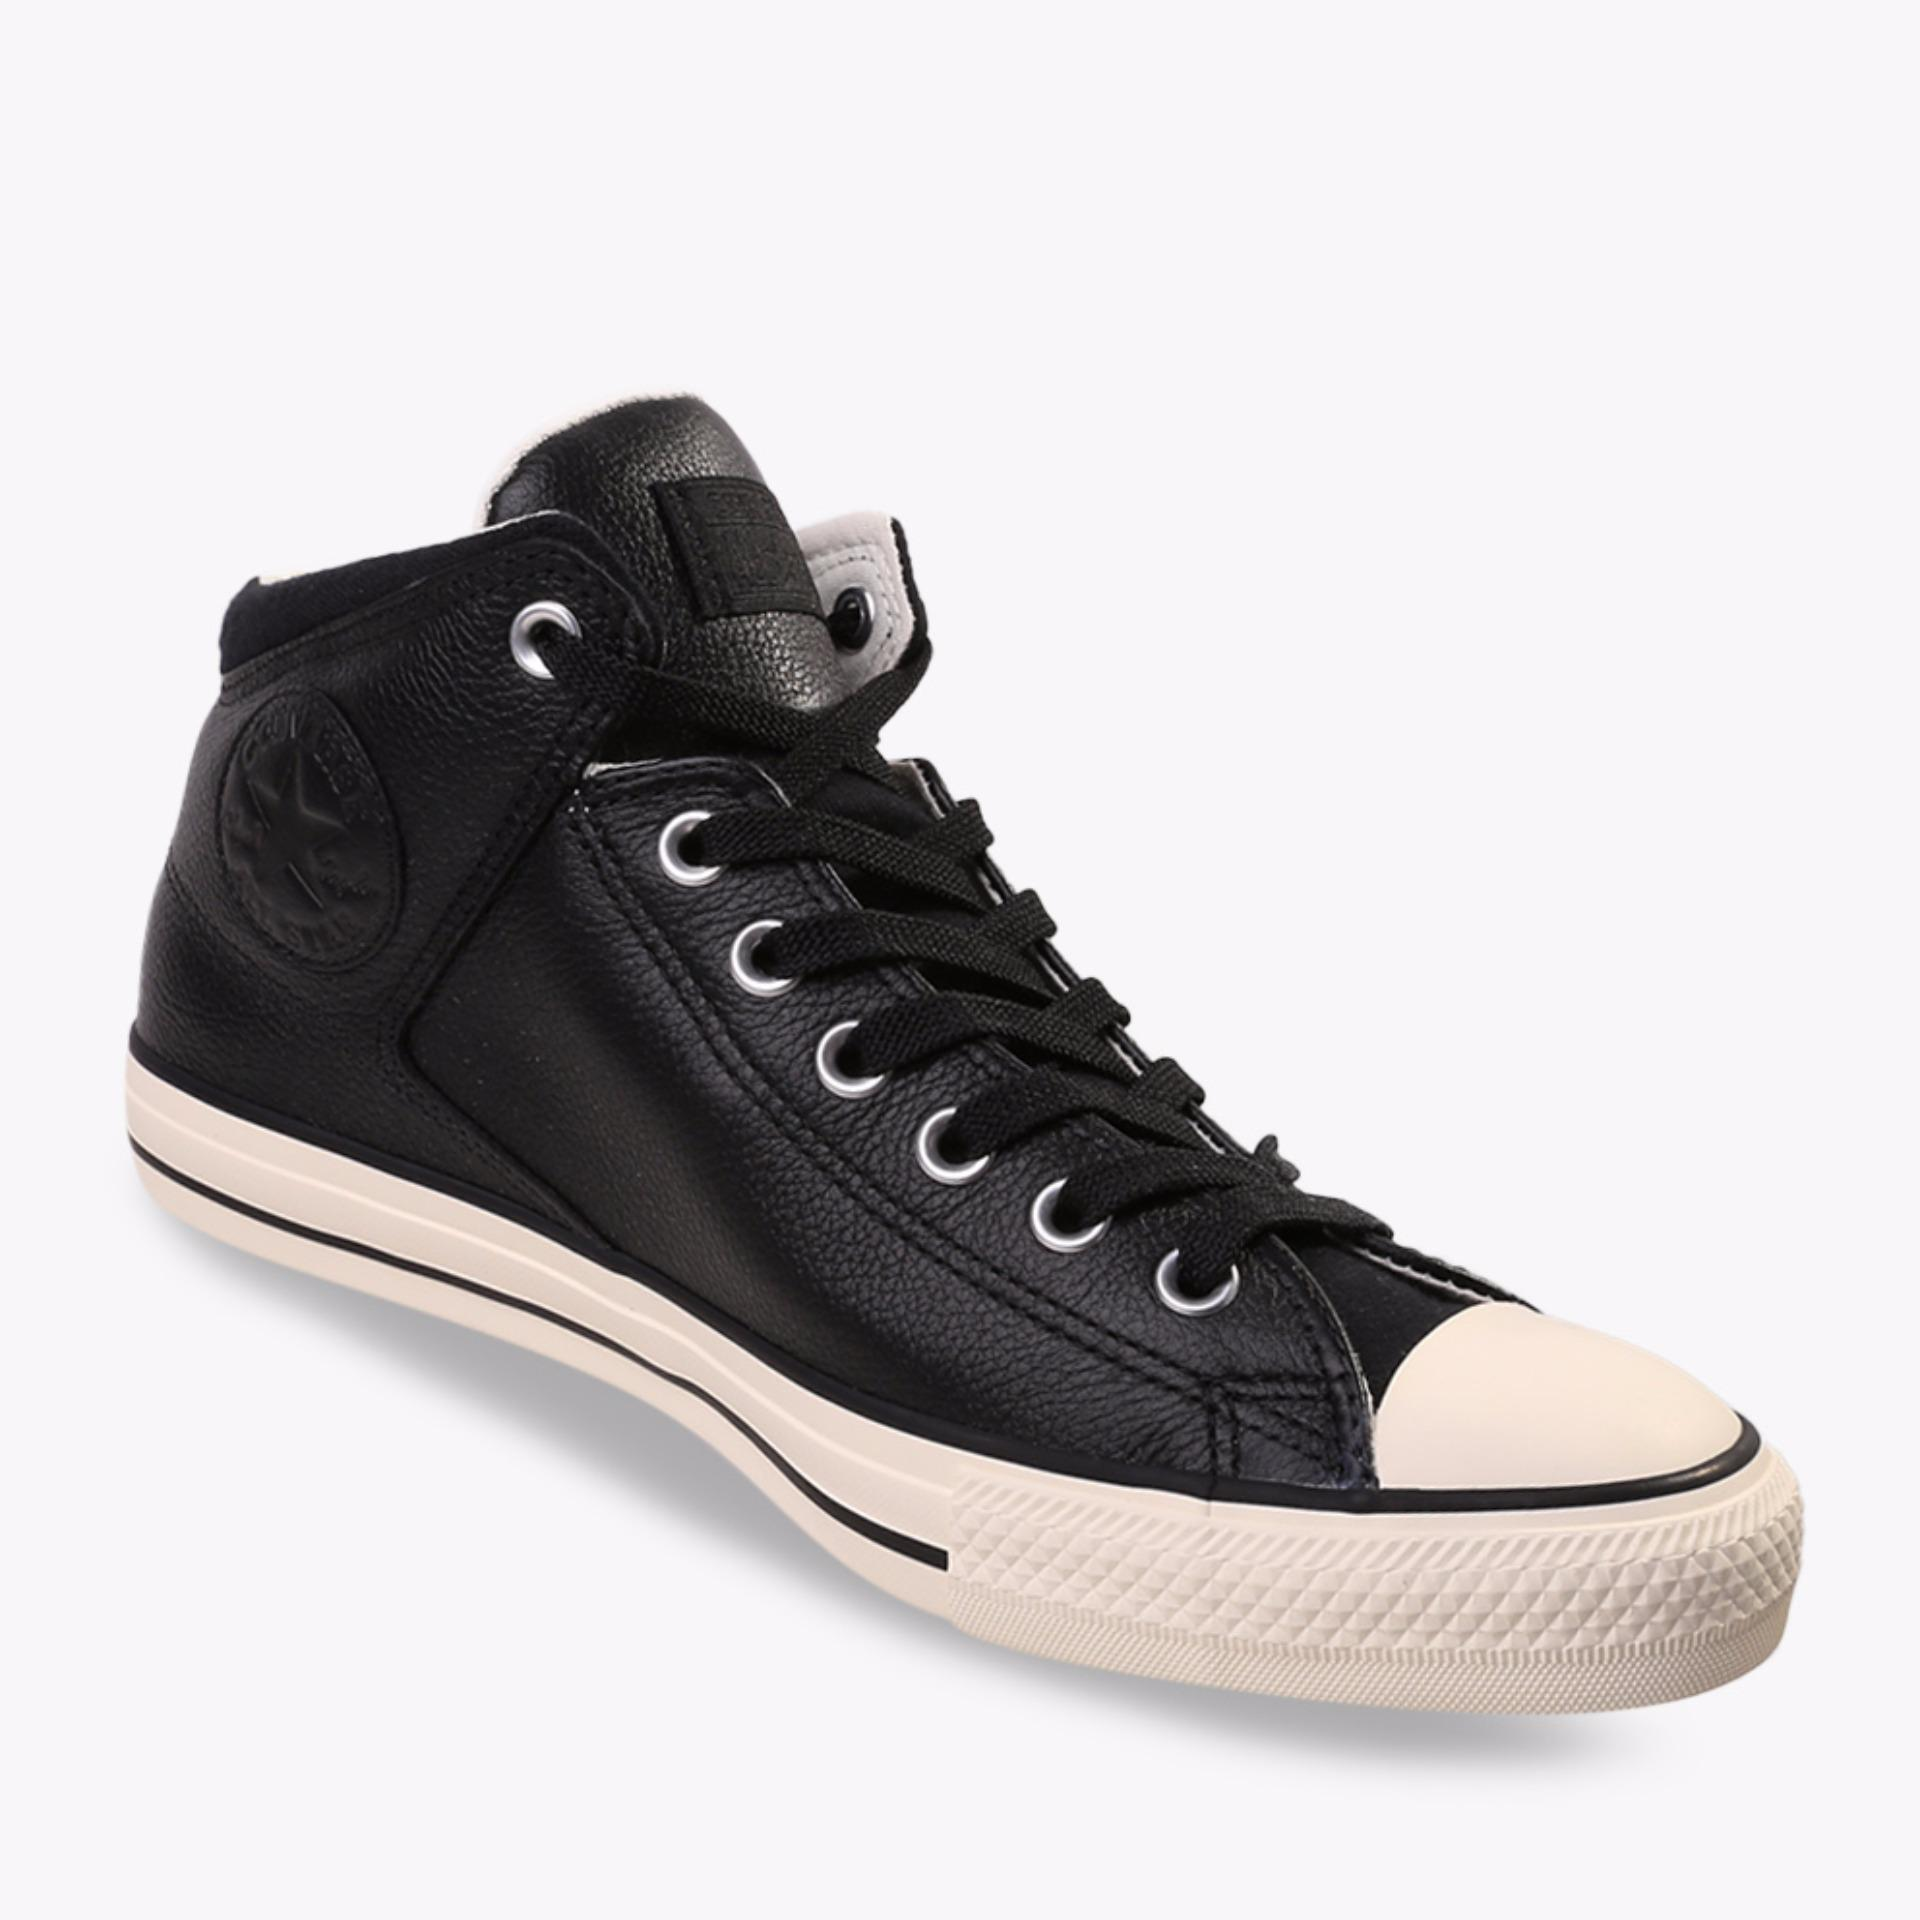 Jual Beli Online Converse Chuck Taylor All Star High Stret Men S Sneakers Shoes Hitam